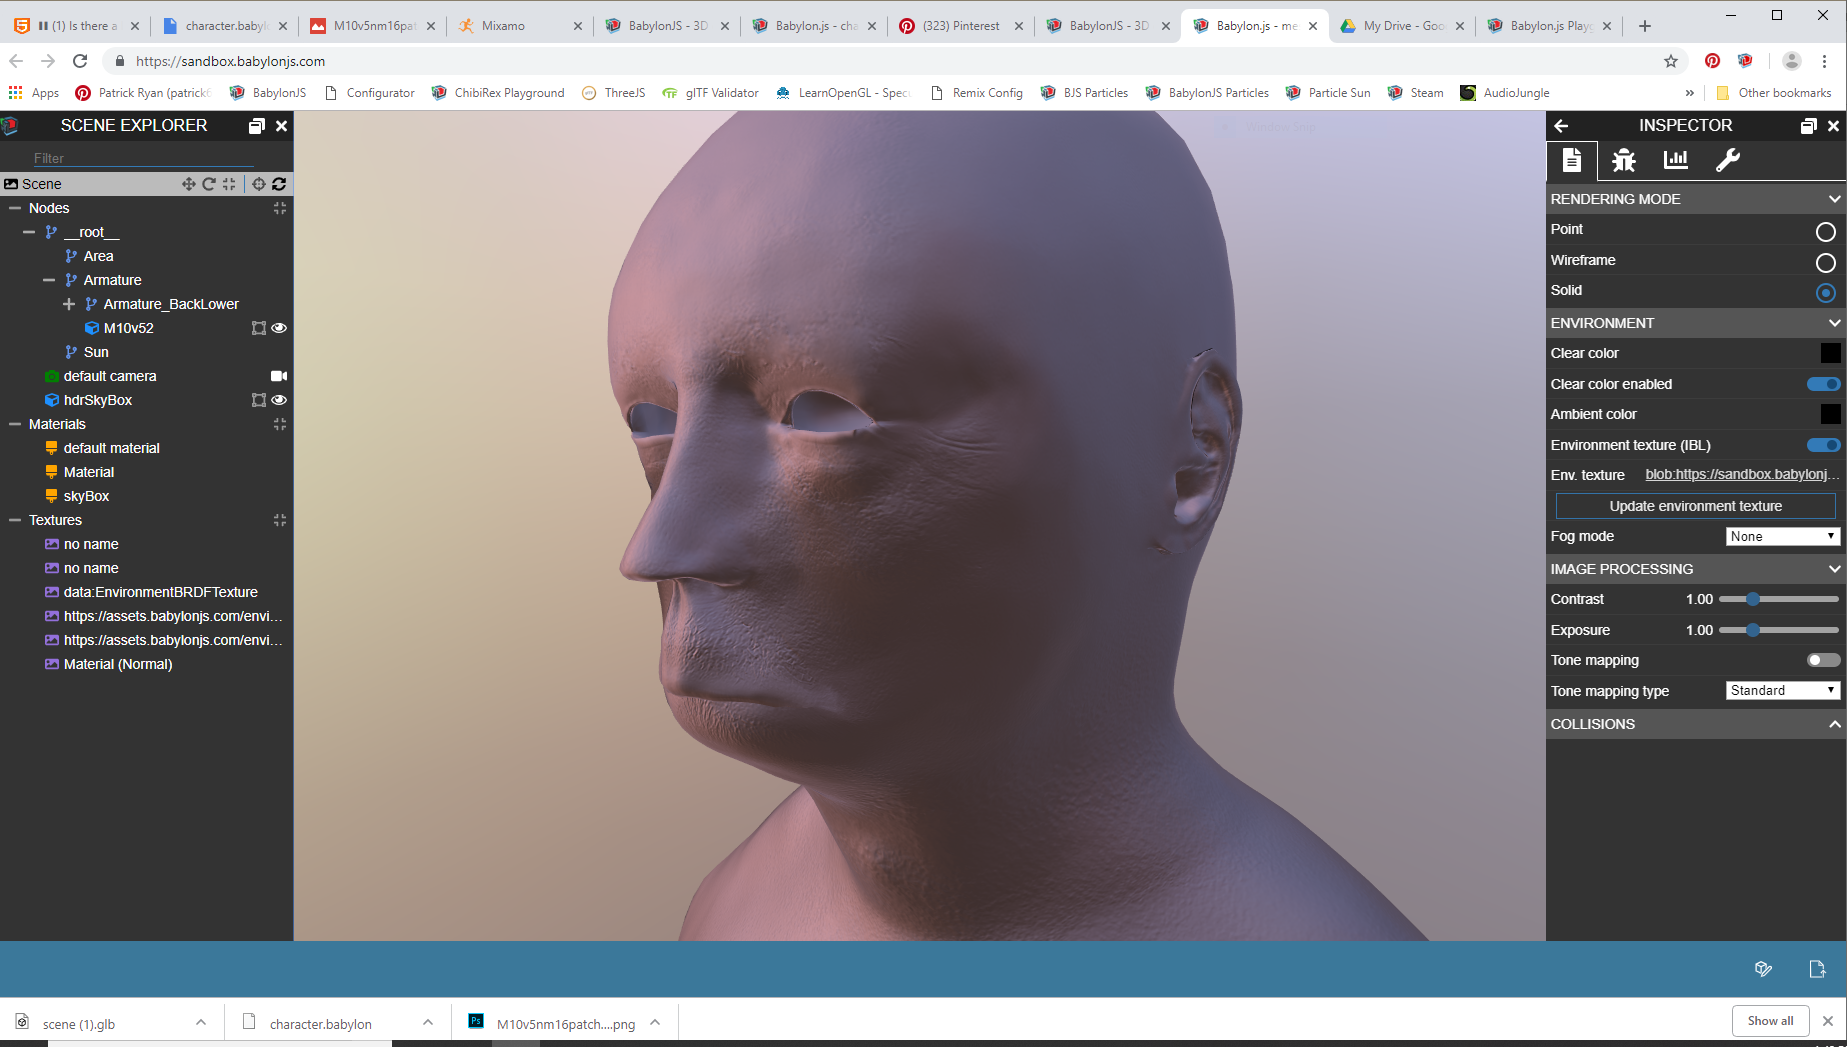 Normal map shows faces - Questions & Answers - HTML5 Game